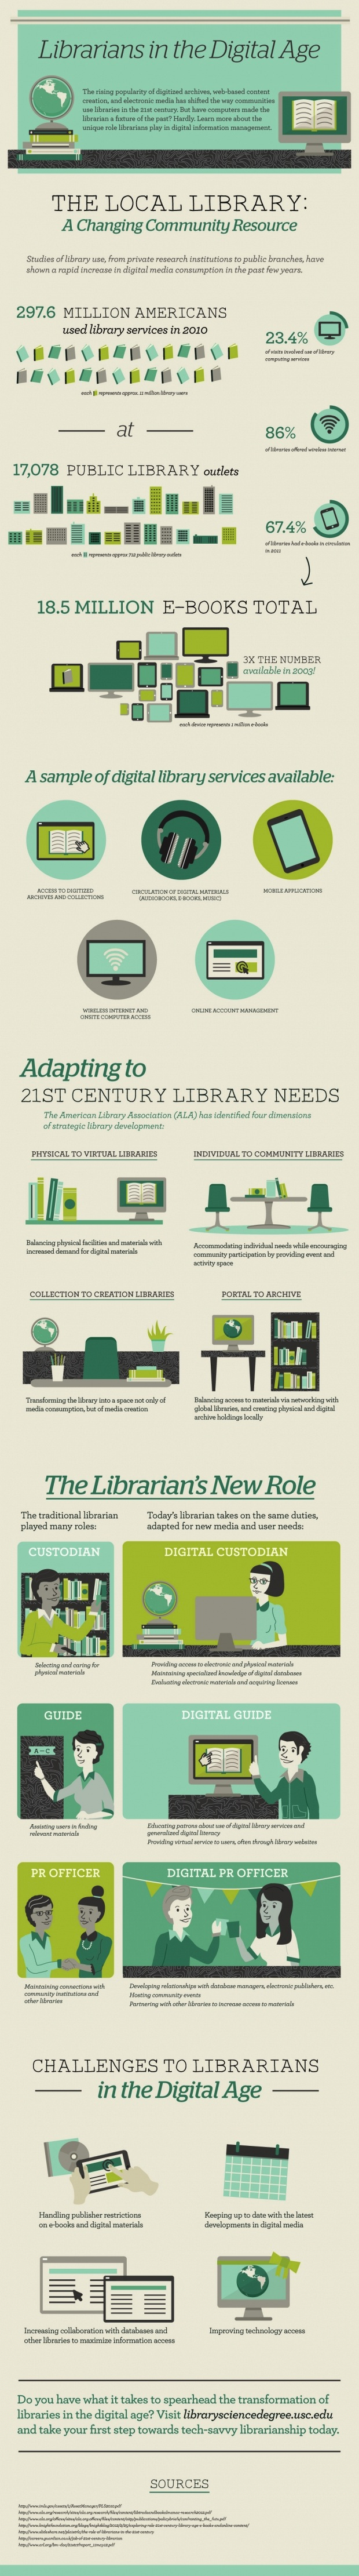 The-Role-of-Librarians-In-The-Digital-Age